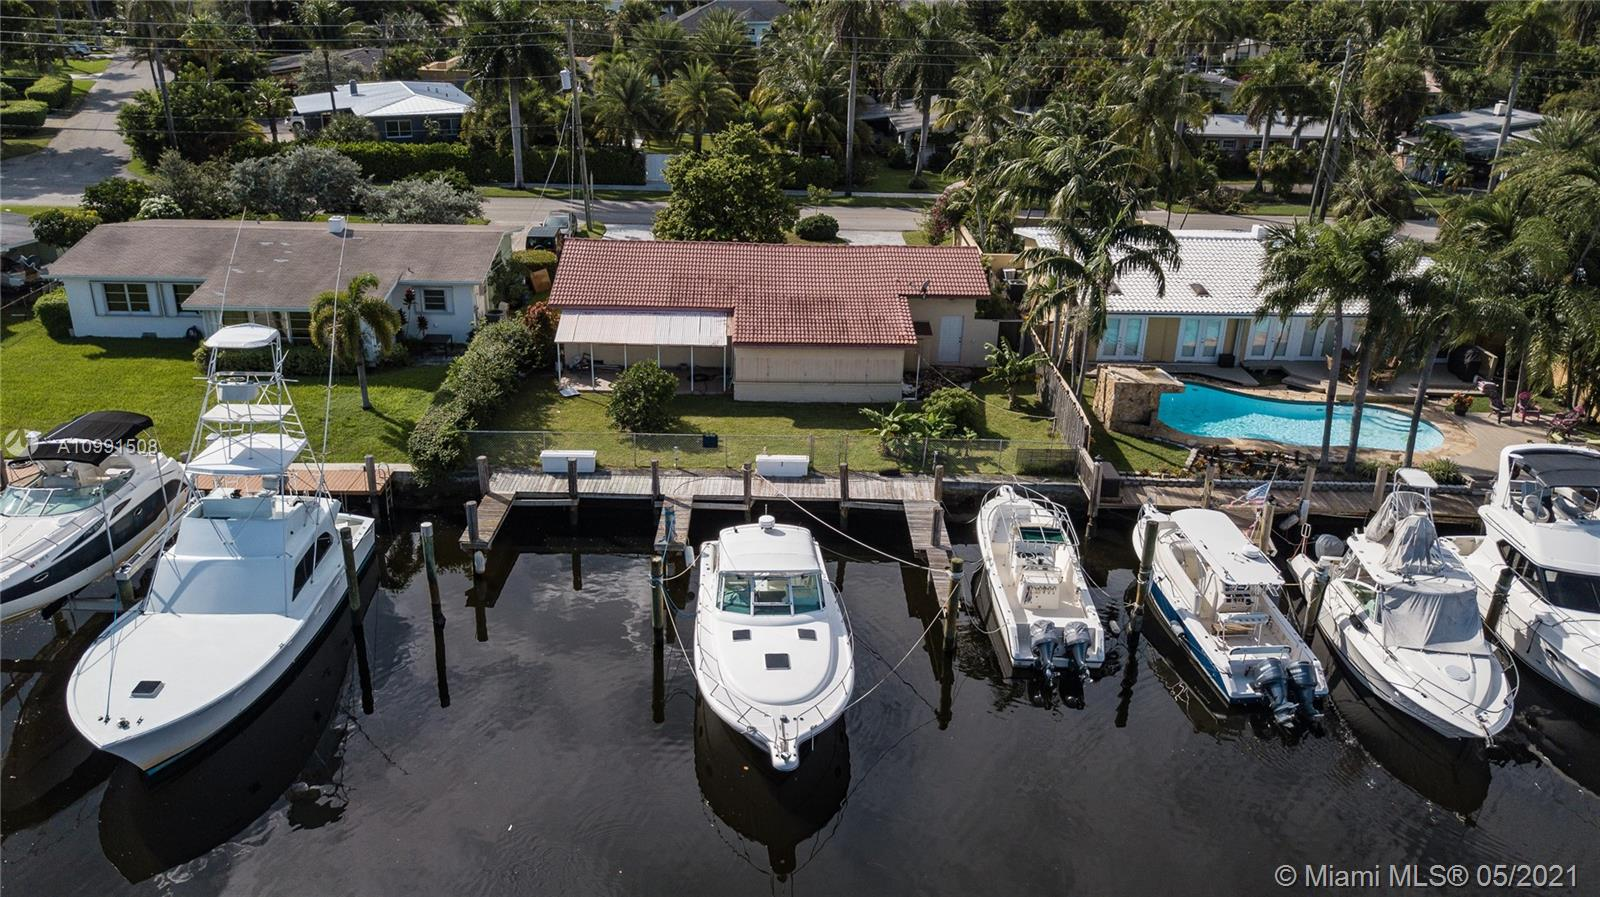 This 3 Bedroom, 2 Bath Home could be the Home of your Dreams, located in the highly desirable Lauderdale Harbor neighborhood, bordering Rio Vista! Your new Home offers 70' of waterfront on a WIDE river/canal with NO FIXED BRIDGES, including 3 docks! With its close proximity to the Port, Airport, Fine Dining, Brand New Platinum Whole Food and so much more, how could live or dock anywhere else? This Home is an Oldie but Goldie! Just bring your decorator, or if you choose, bring your contractor and build a Brand New Dream Home. Your choice! So what are you waiting for? Call today to see this diamond in the rough. This won't last long! You can be sure of that!